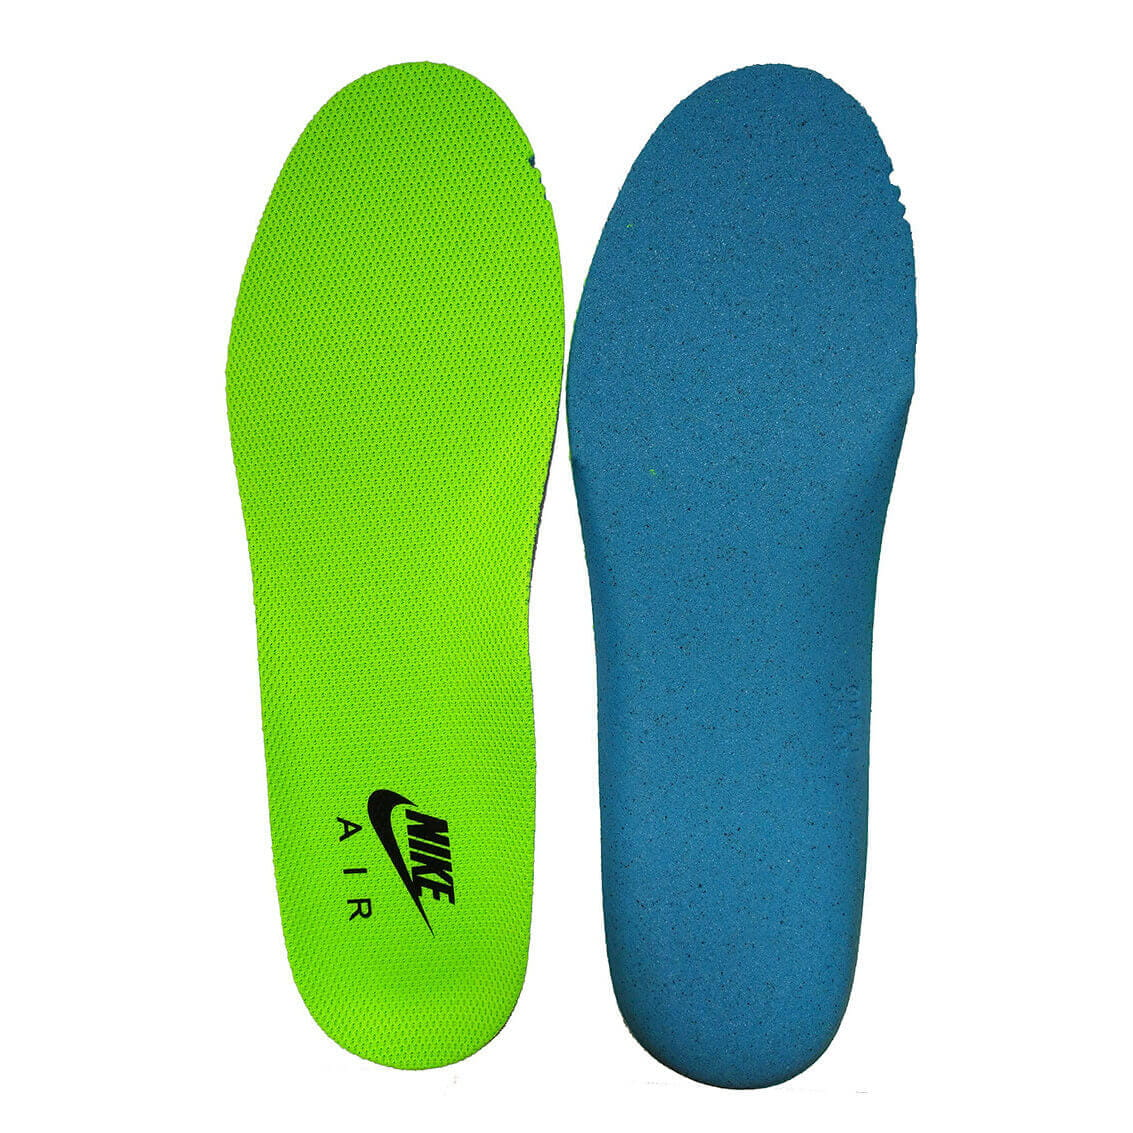 Replacement NIKE AIR Ortholite Shoes Insoles Light Green